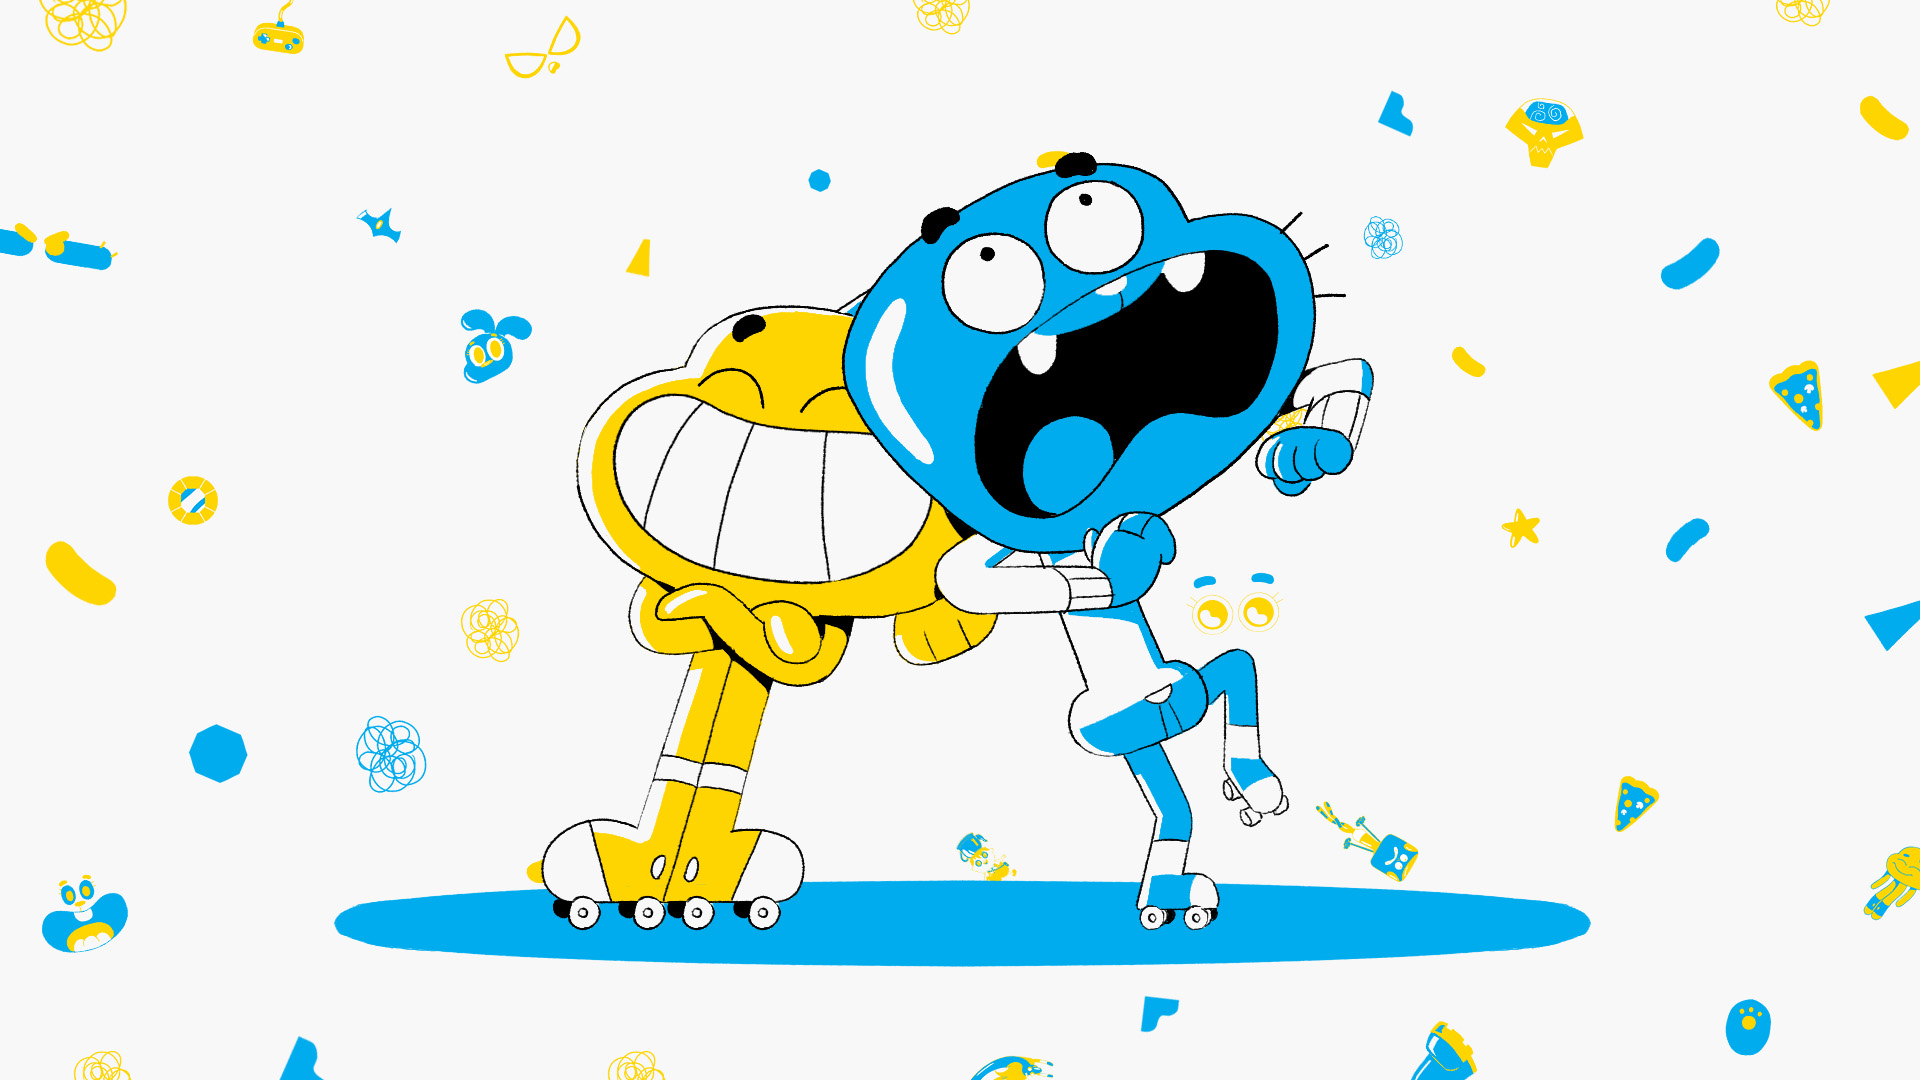 Cartoon network oddfellows creative studio theyre breakdance fighting digging into our bag of tricks we partnered with cartoon network to immerse viewers in these colorful thecheapjerseys Choice Image